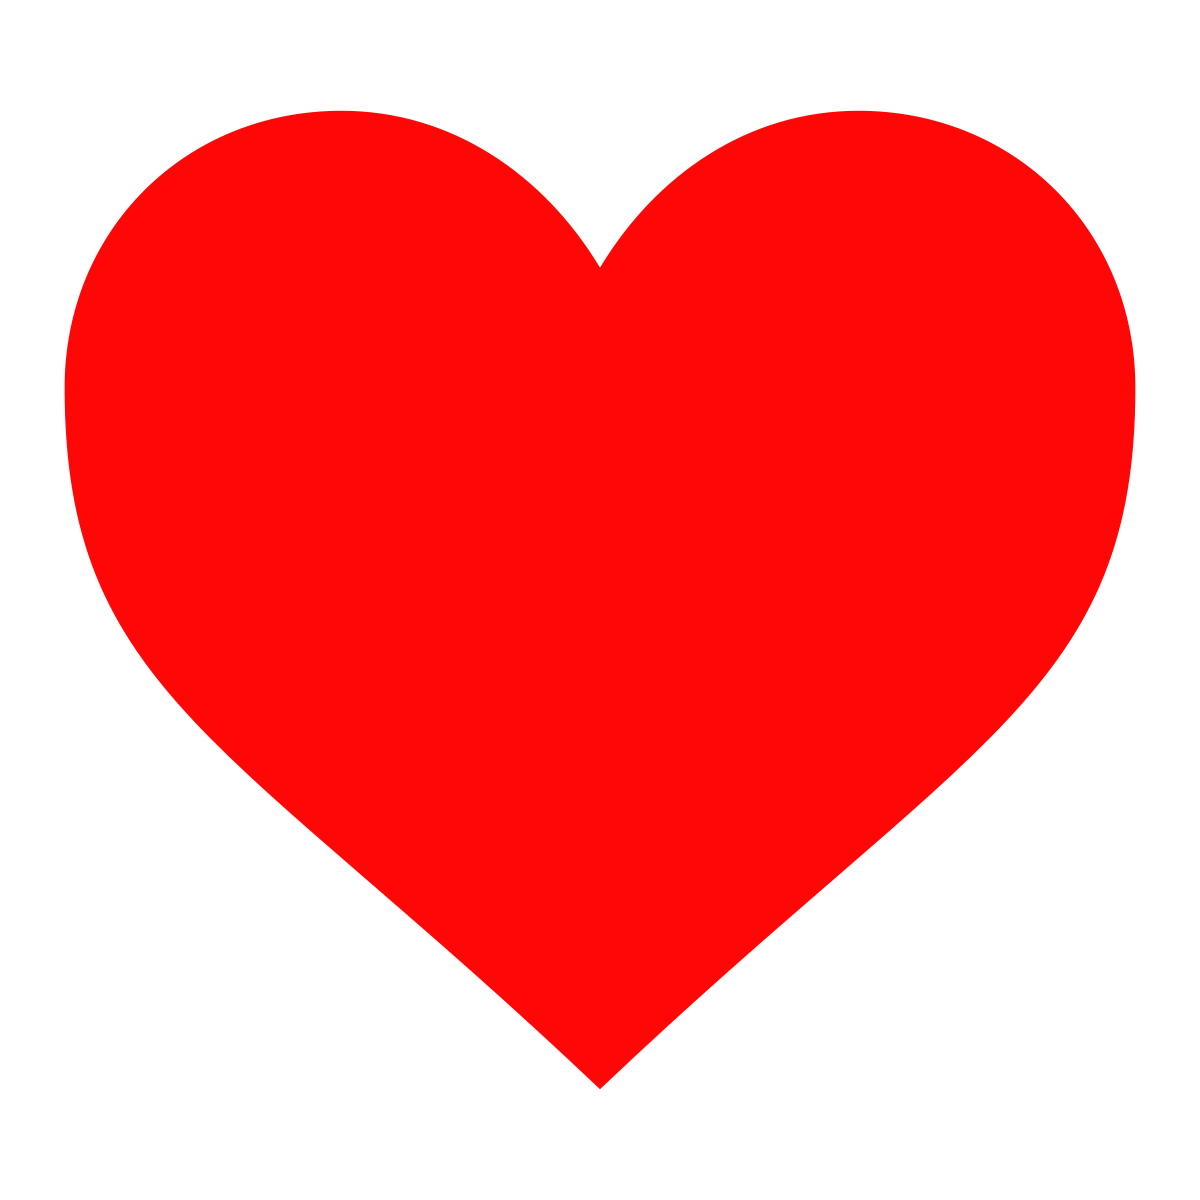 Heart-shaped svg #11, Download drawings